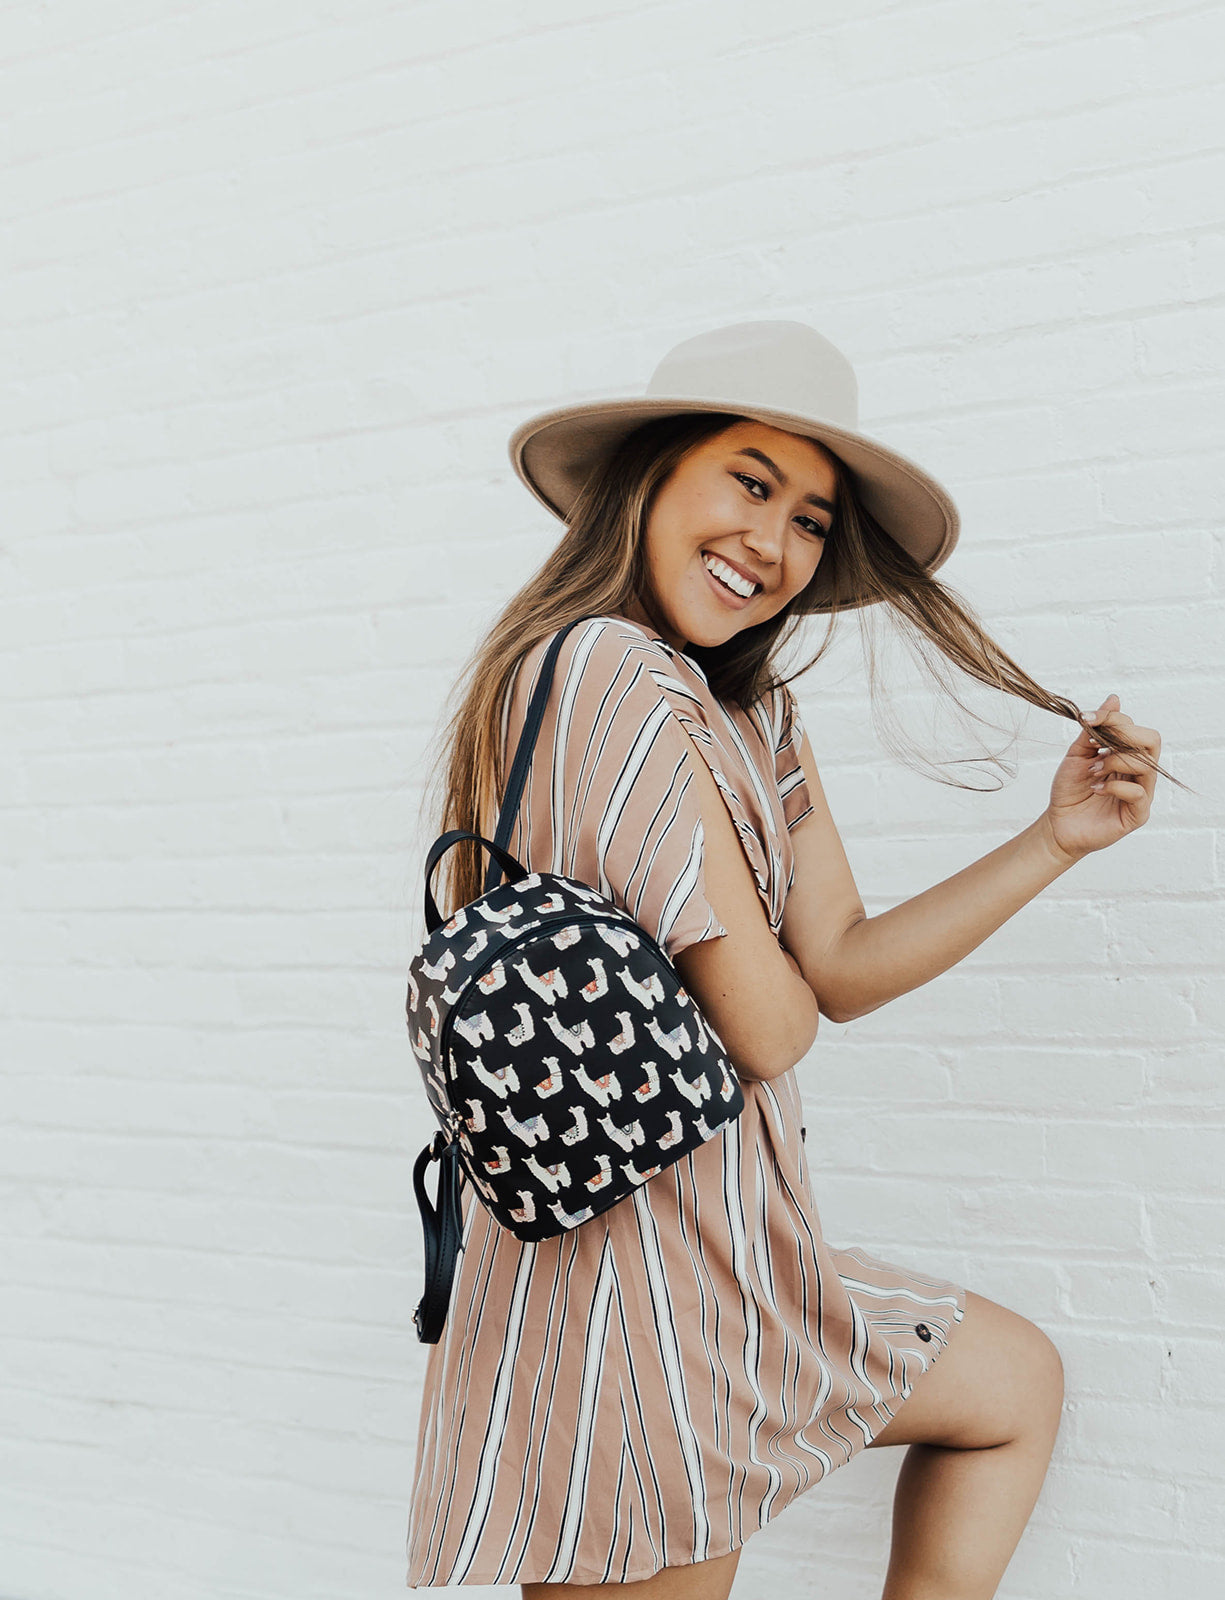 Llamas on Repeat Backpack in Black